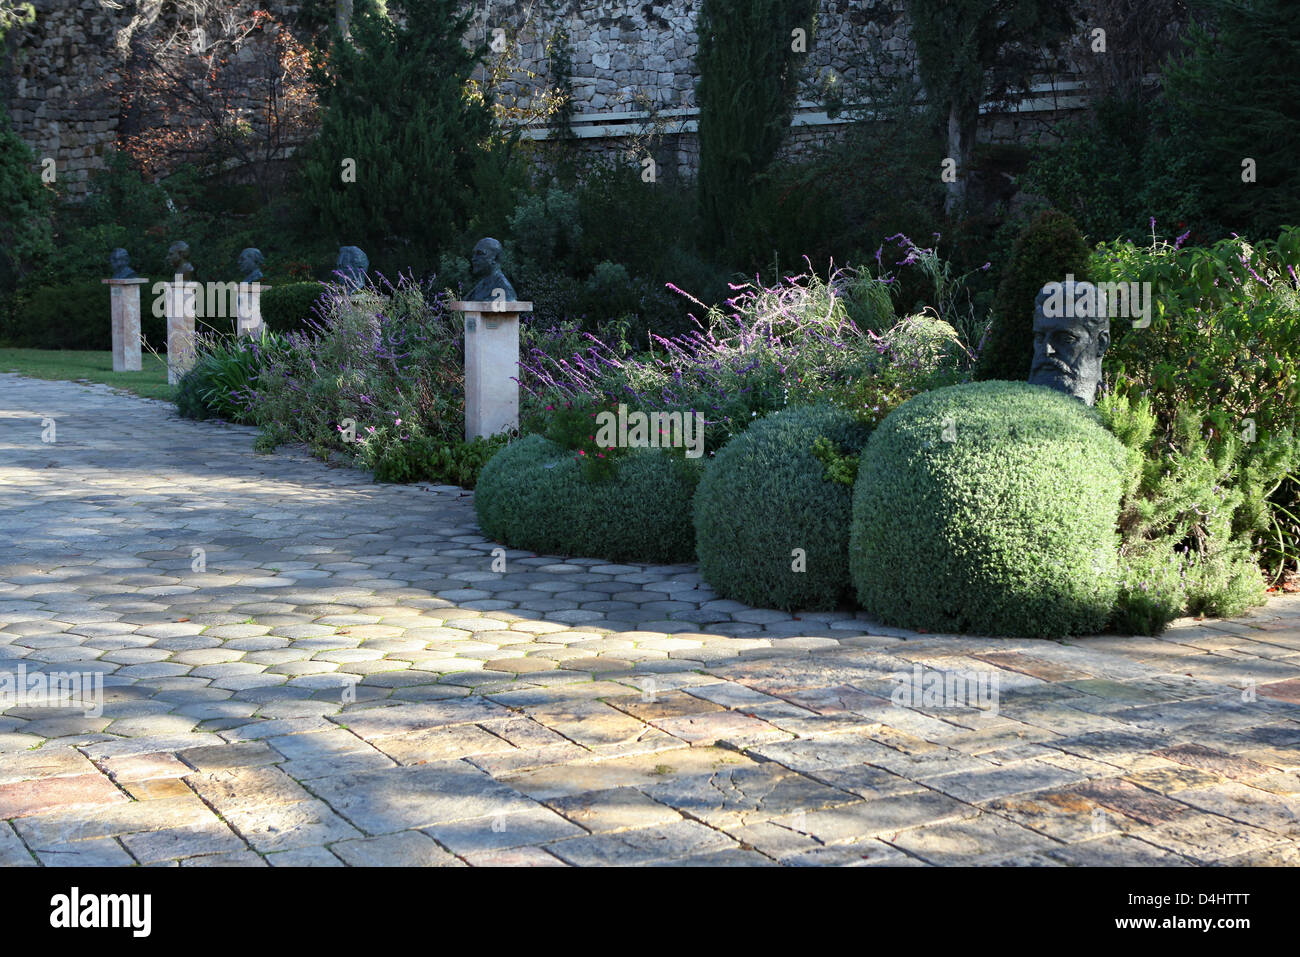 Beit HaNassi ('President's House'), also known as Mishkan HaNassi ('Presidential Residence') - Stock Image